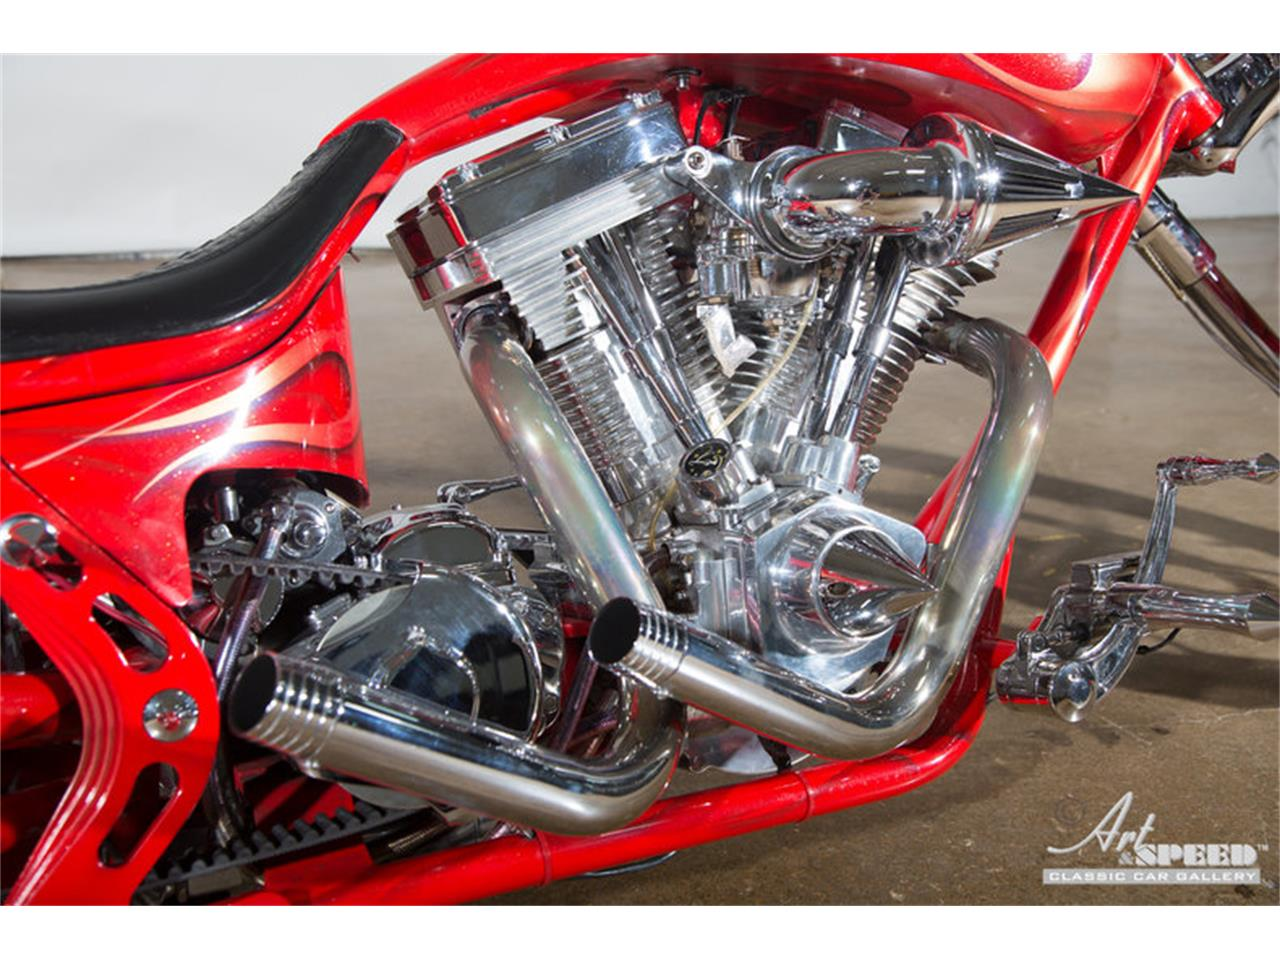 Large Picture of '04 Italdesign Pro MC Custom Chopper located in Collierville Tennessee Offered by Art & Speed - DUSV